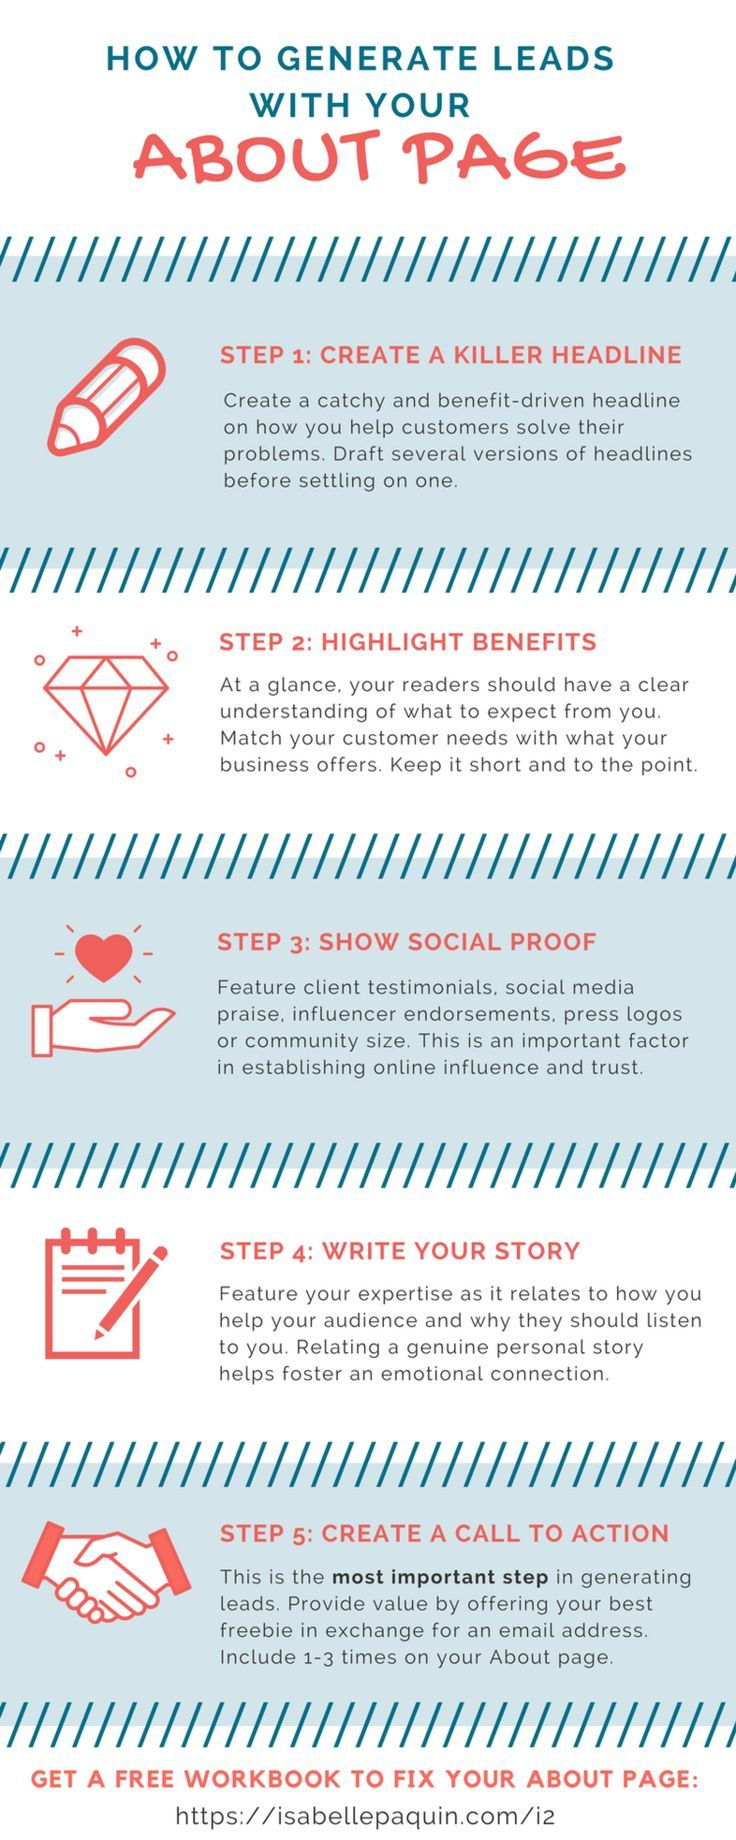 [INFOGRAPHIC] Struggling to write your own About page? Learn how to convert readers into subscribers with these 5 easy steps.